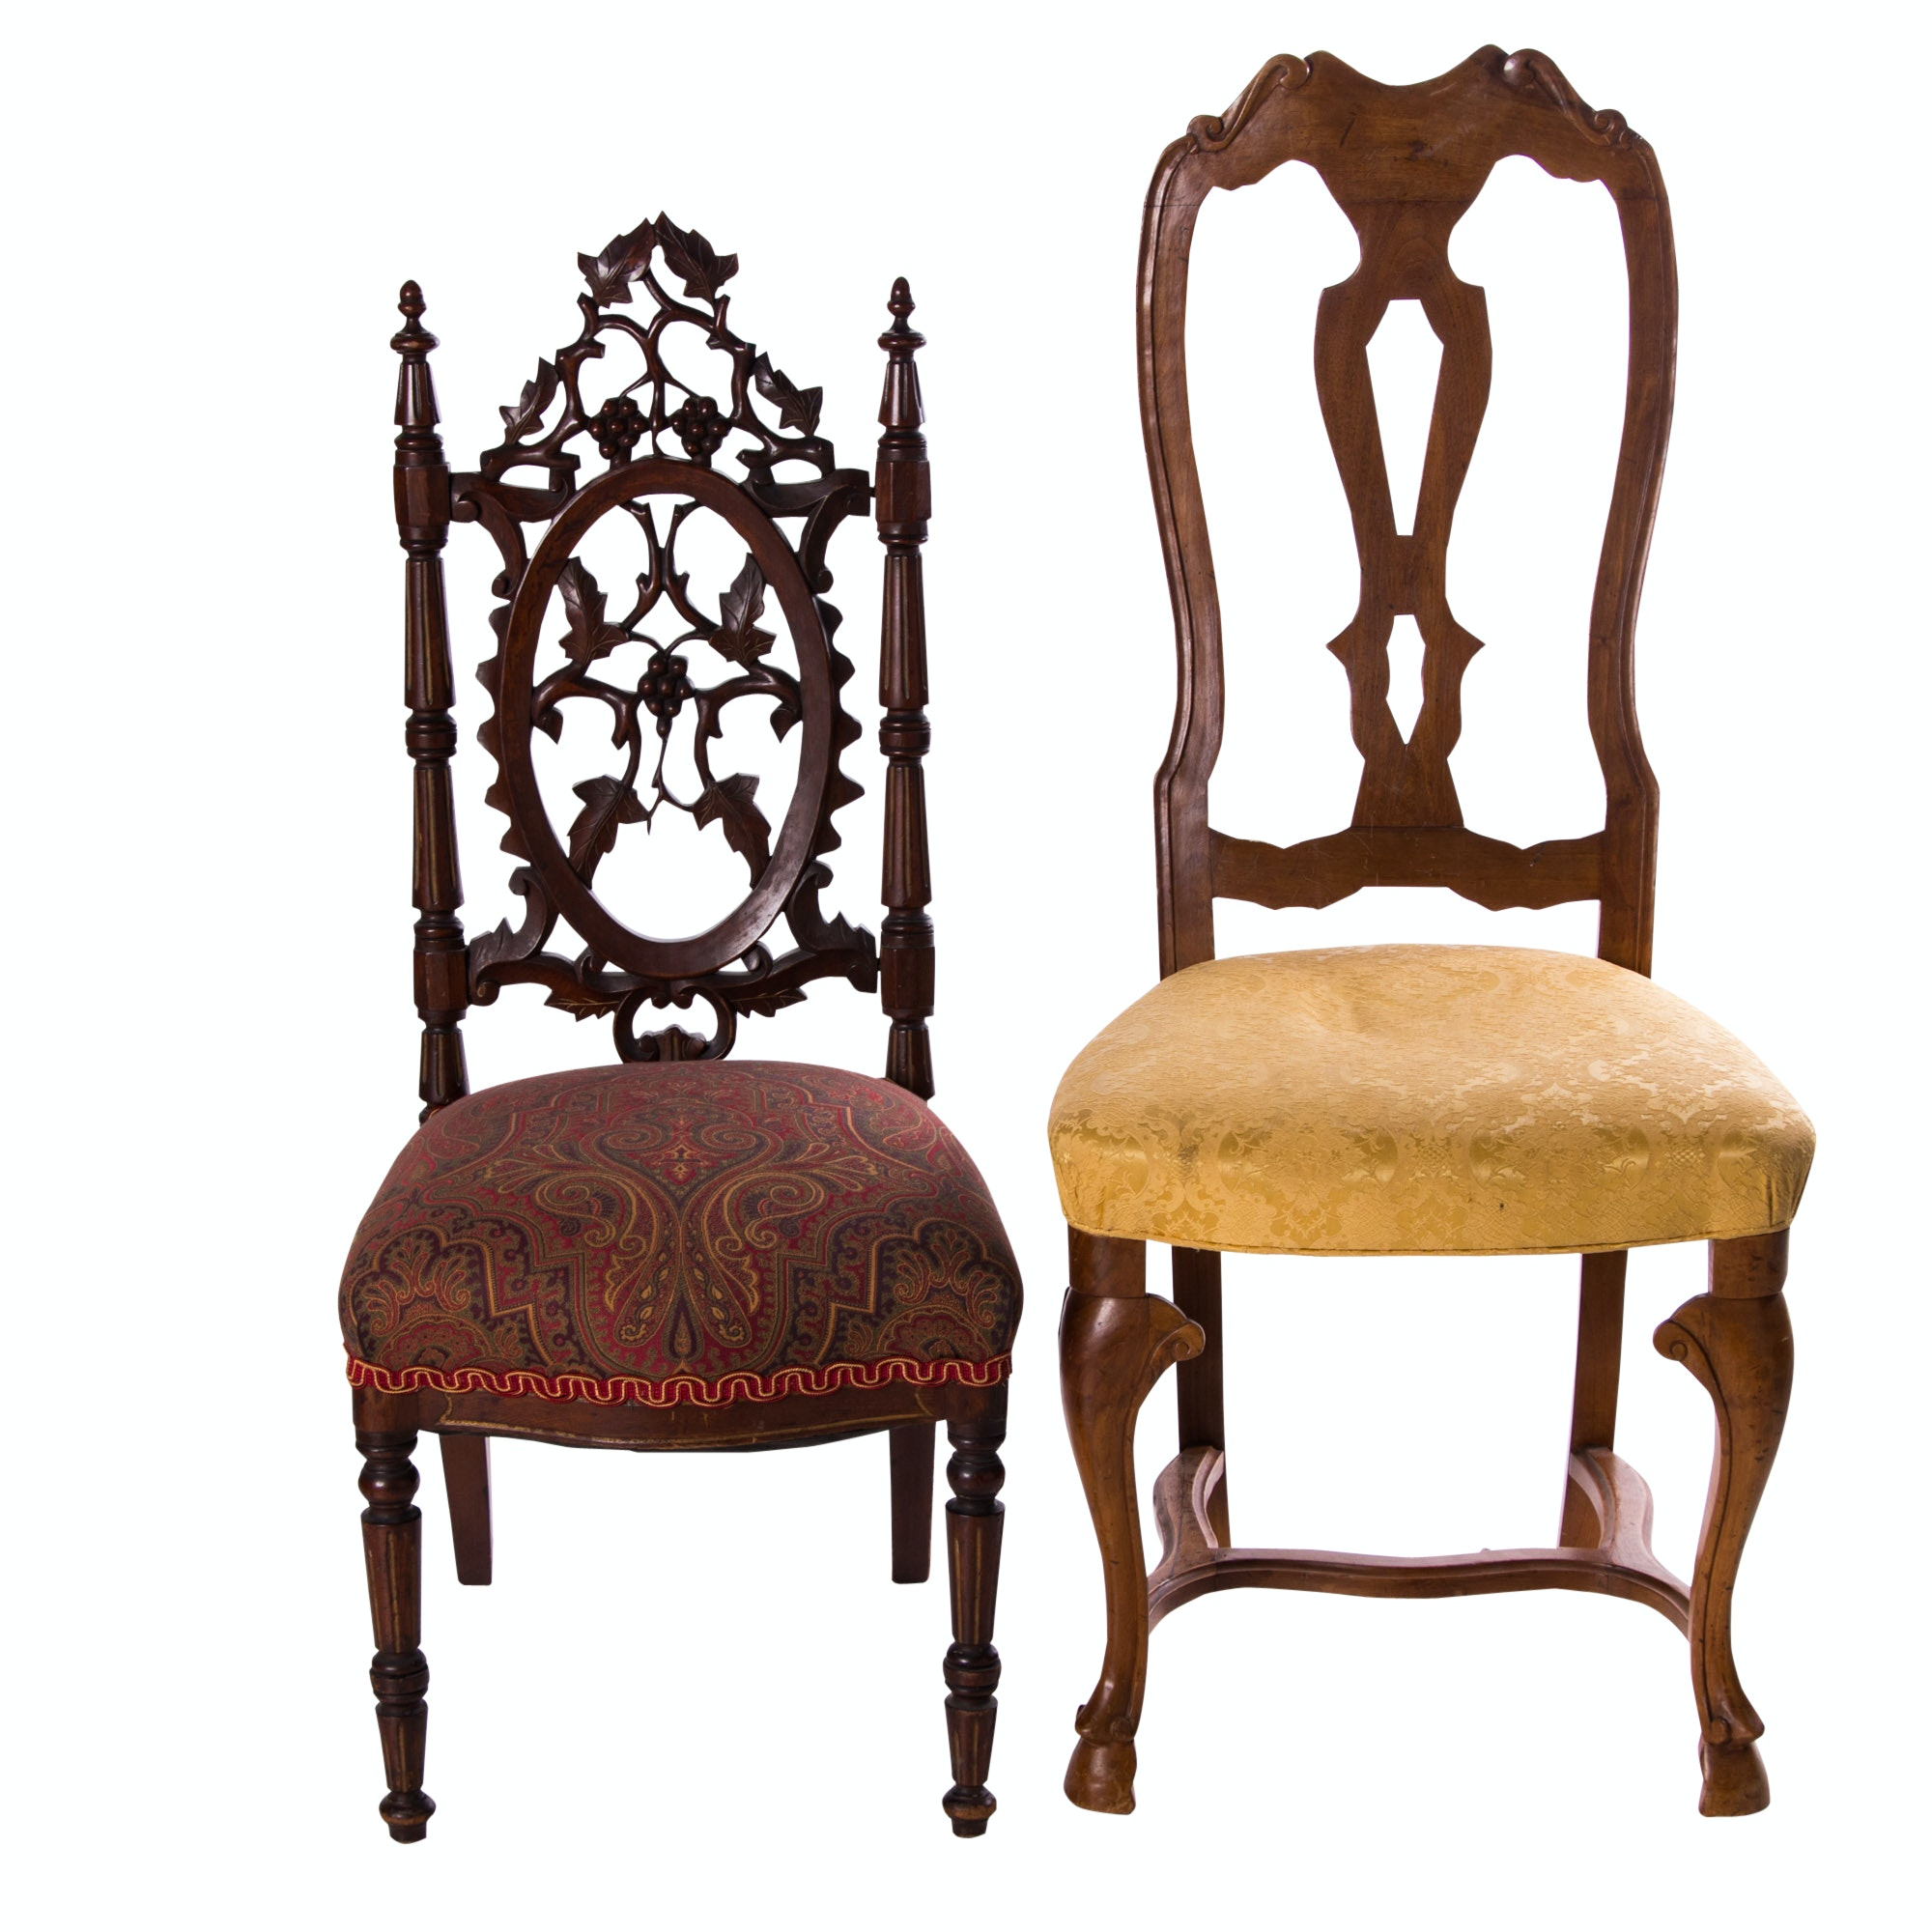 Victorian Mahogany Side Chair, Circa 1880, and Vintage Italian Walnut Side Chair